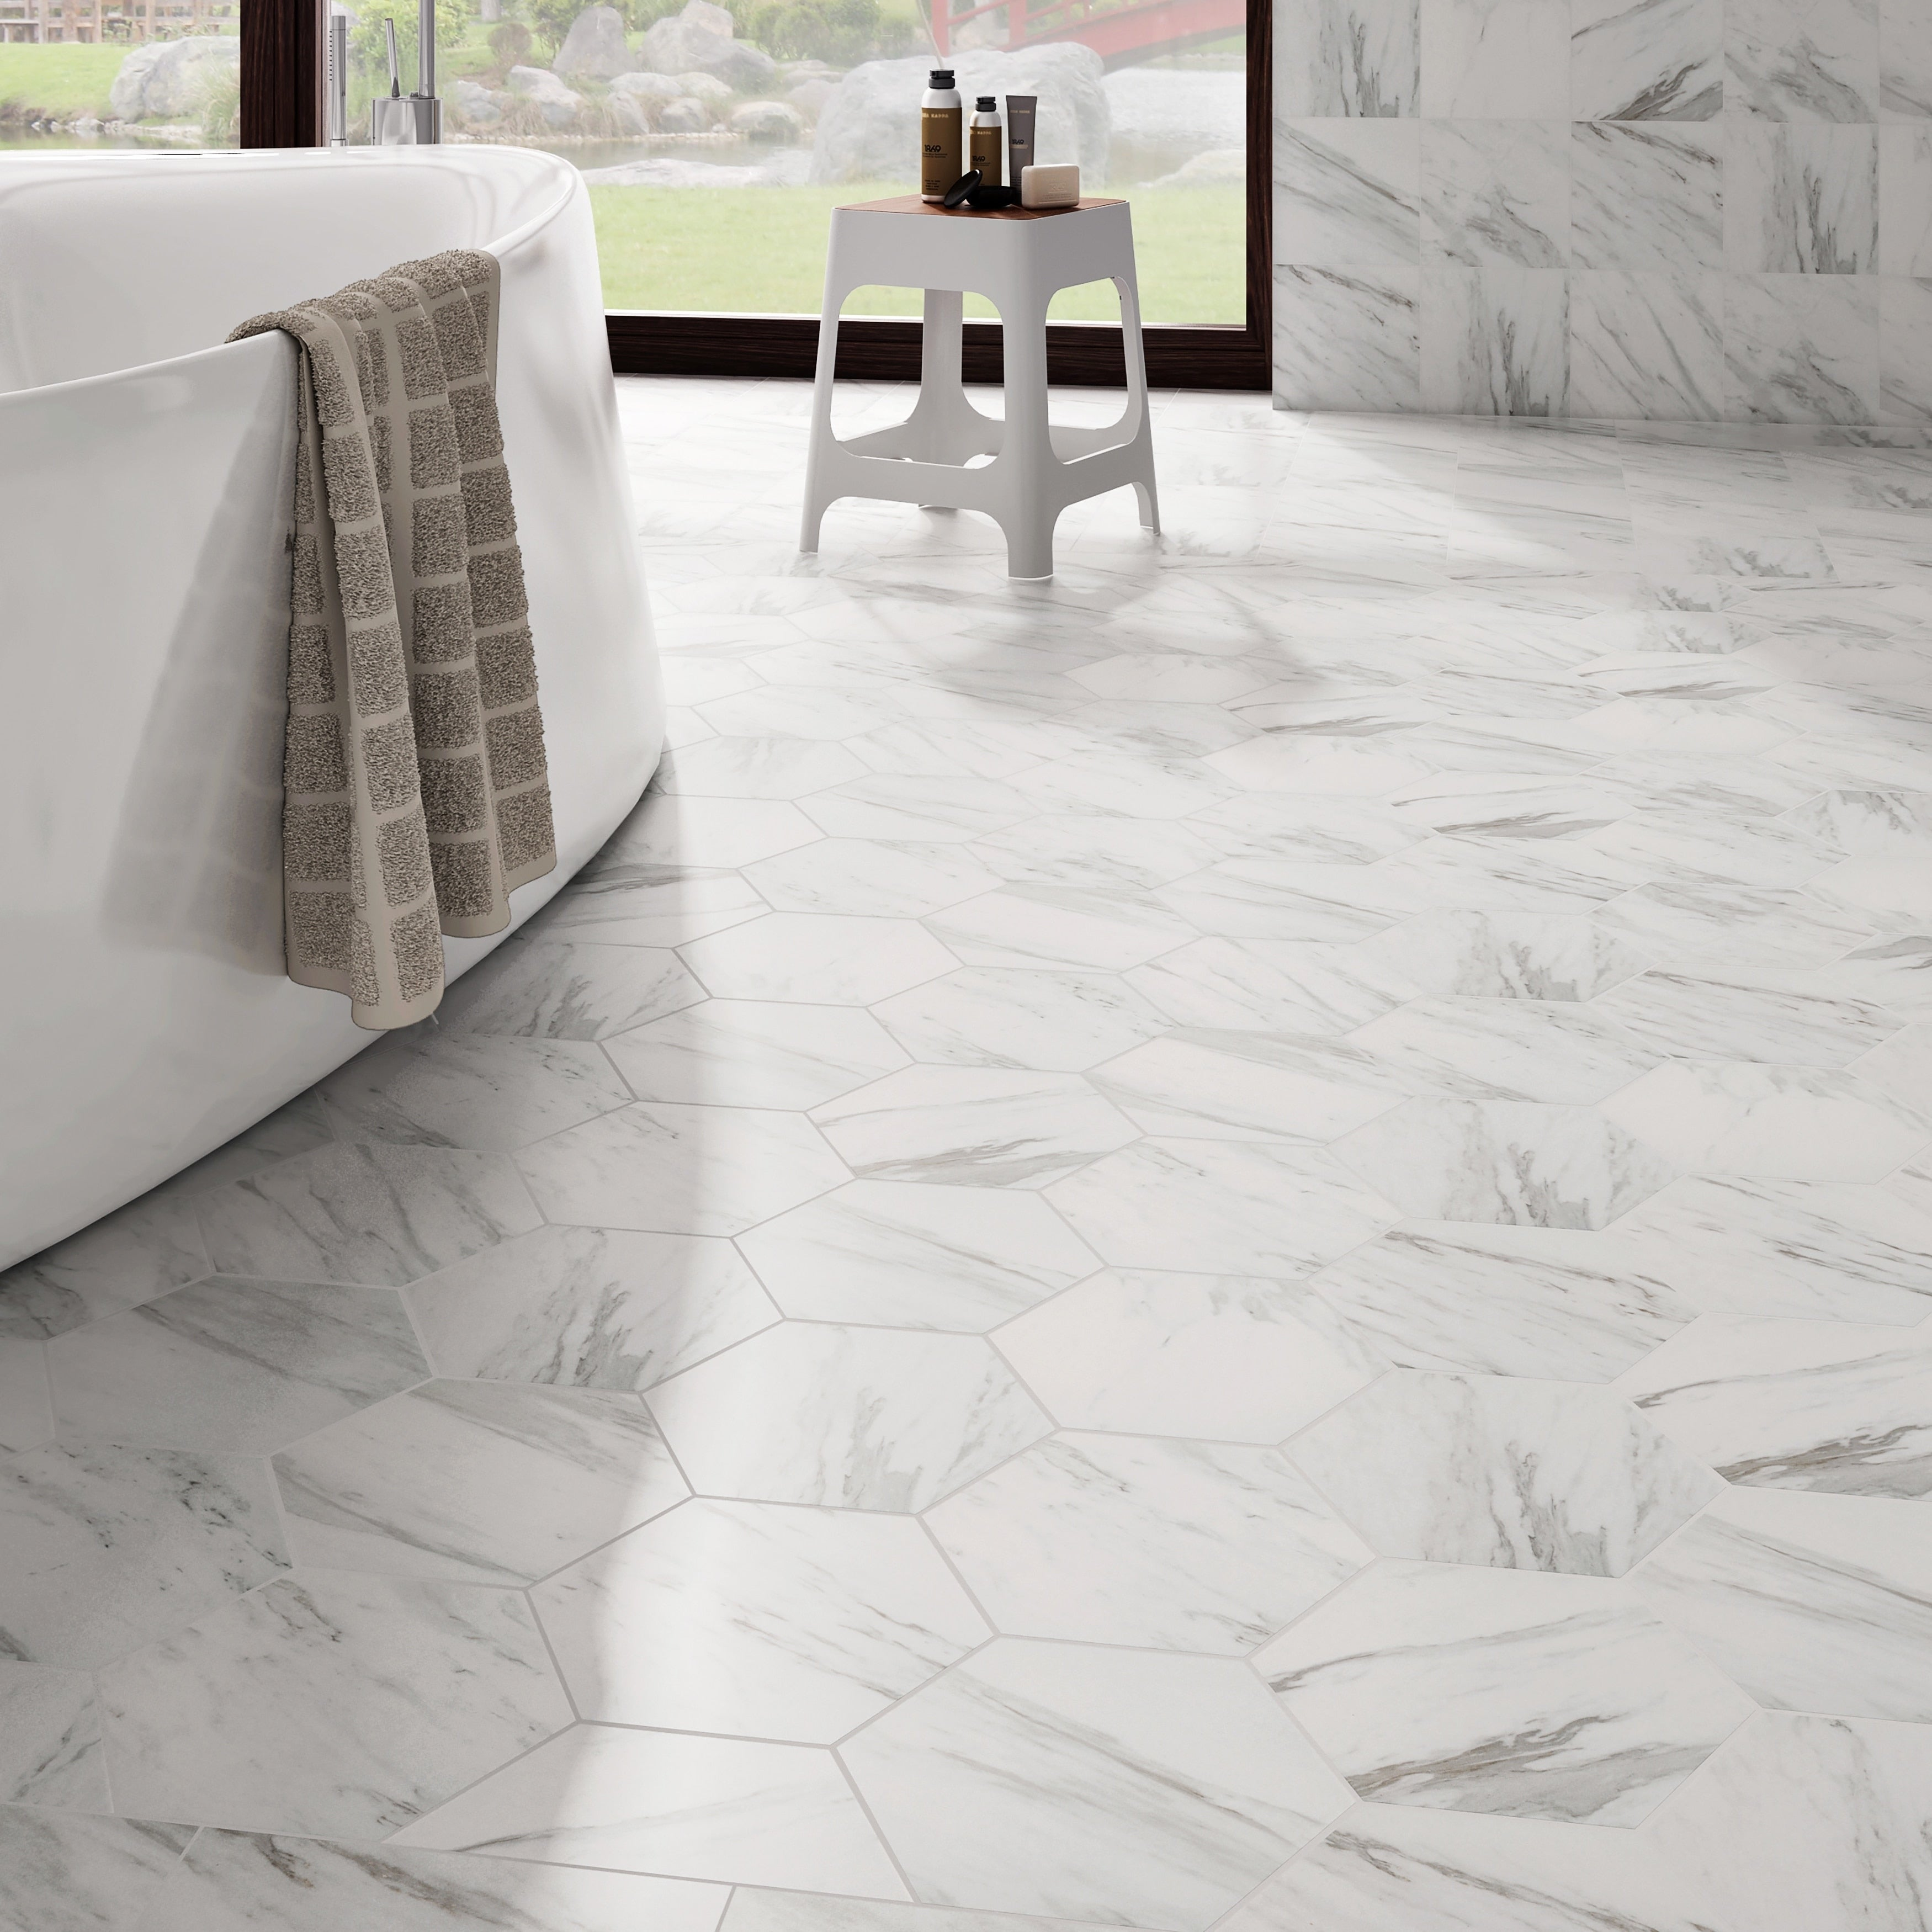 Somertile 8 625x9 875 Inch Marmol Carrara Hex Porcelain Floor And Wall Tile Case Of 25 Free Shipping Today 18763447